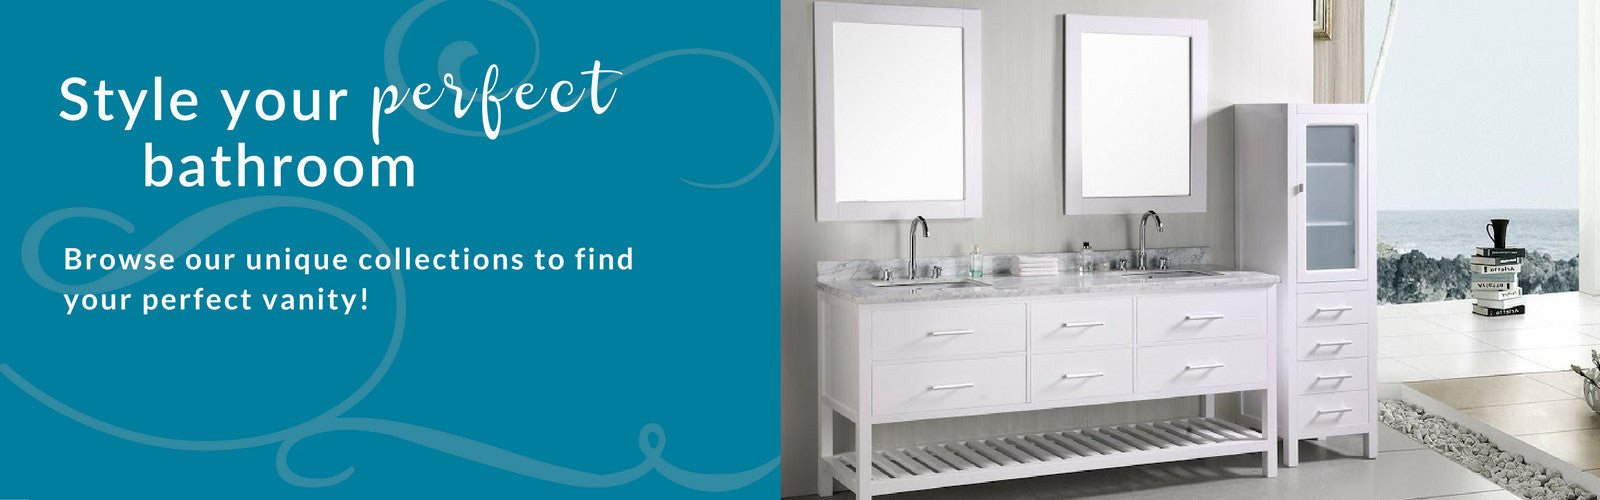 Bathroom vanity sets for every style, need and budget